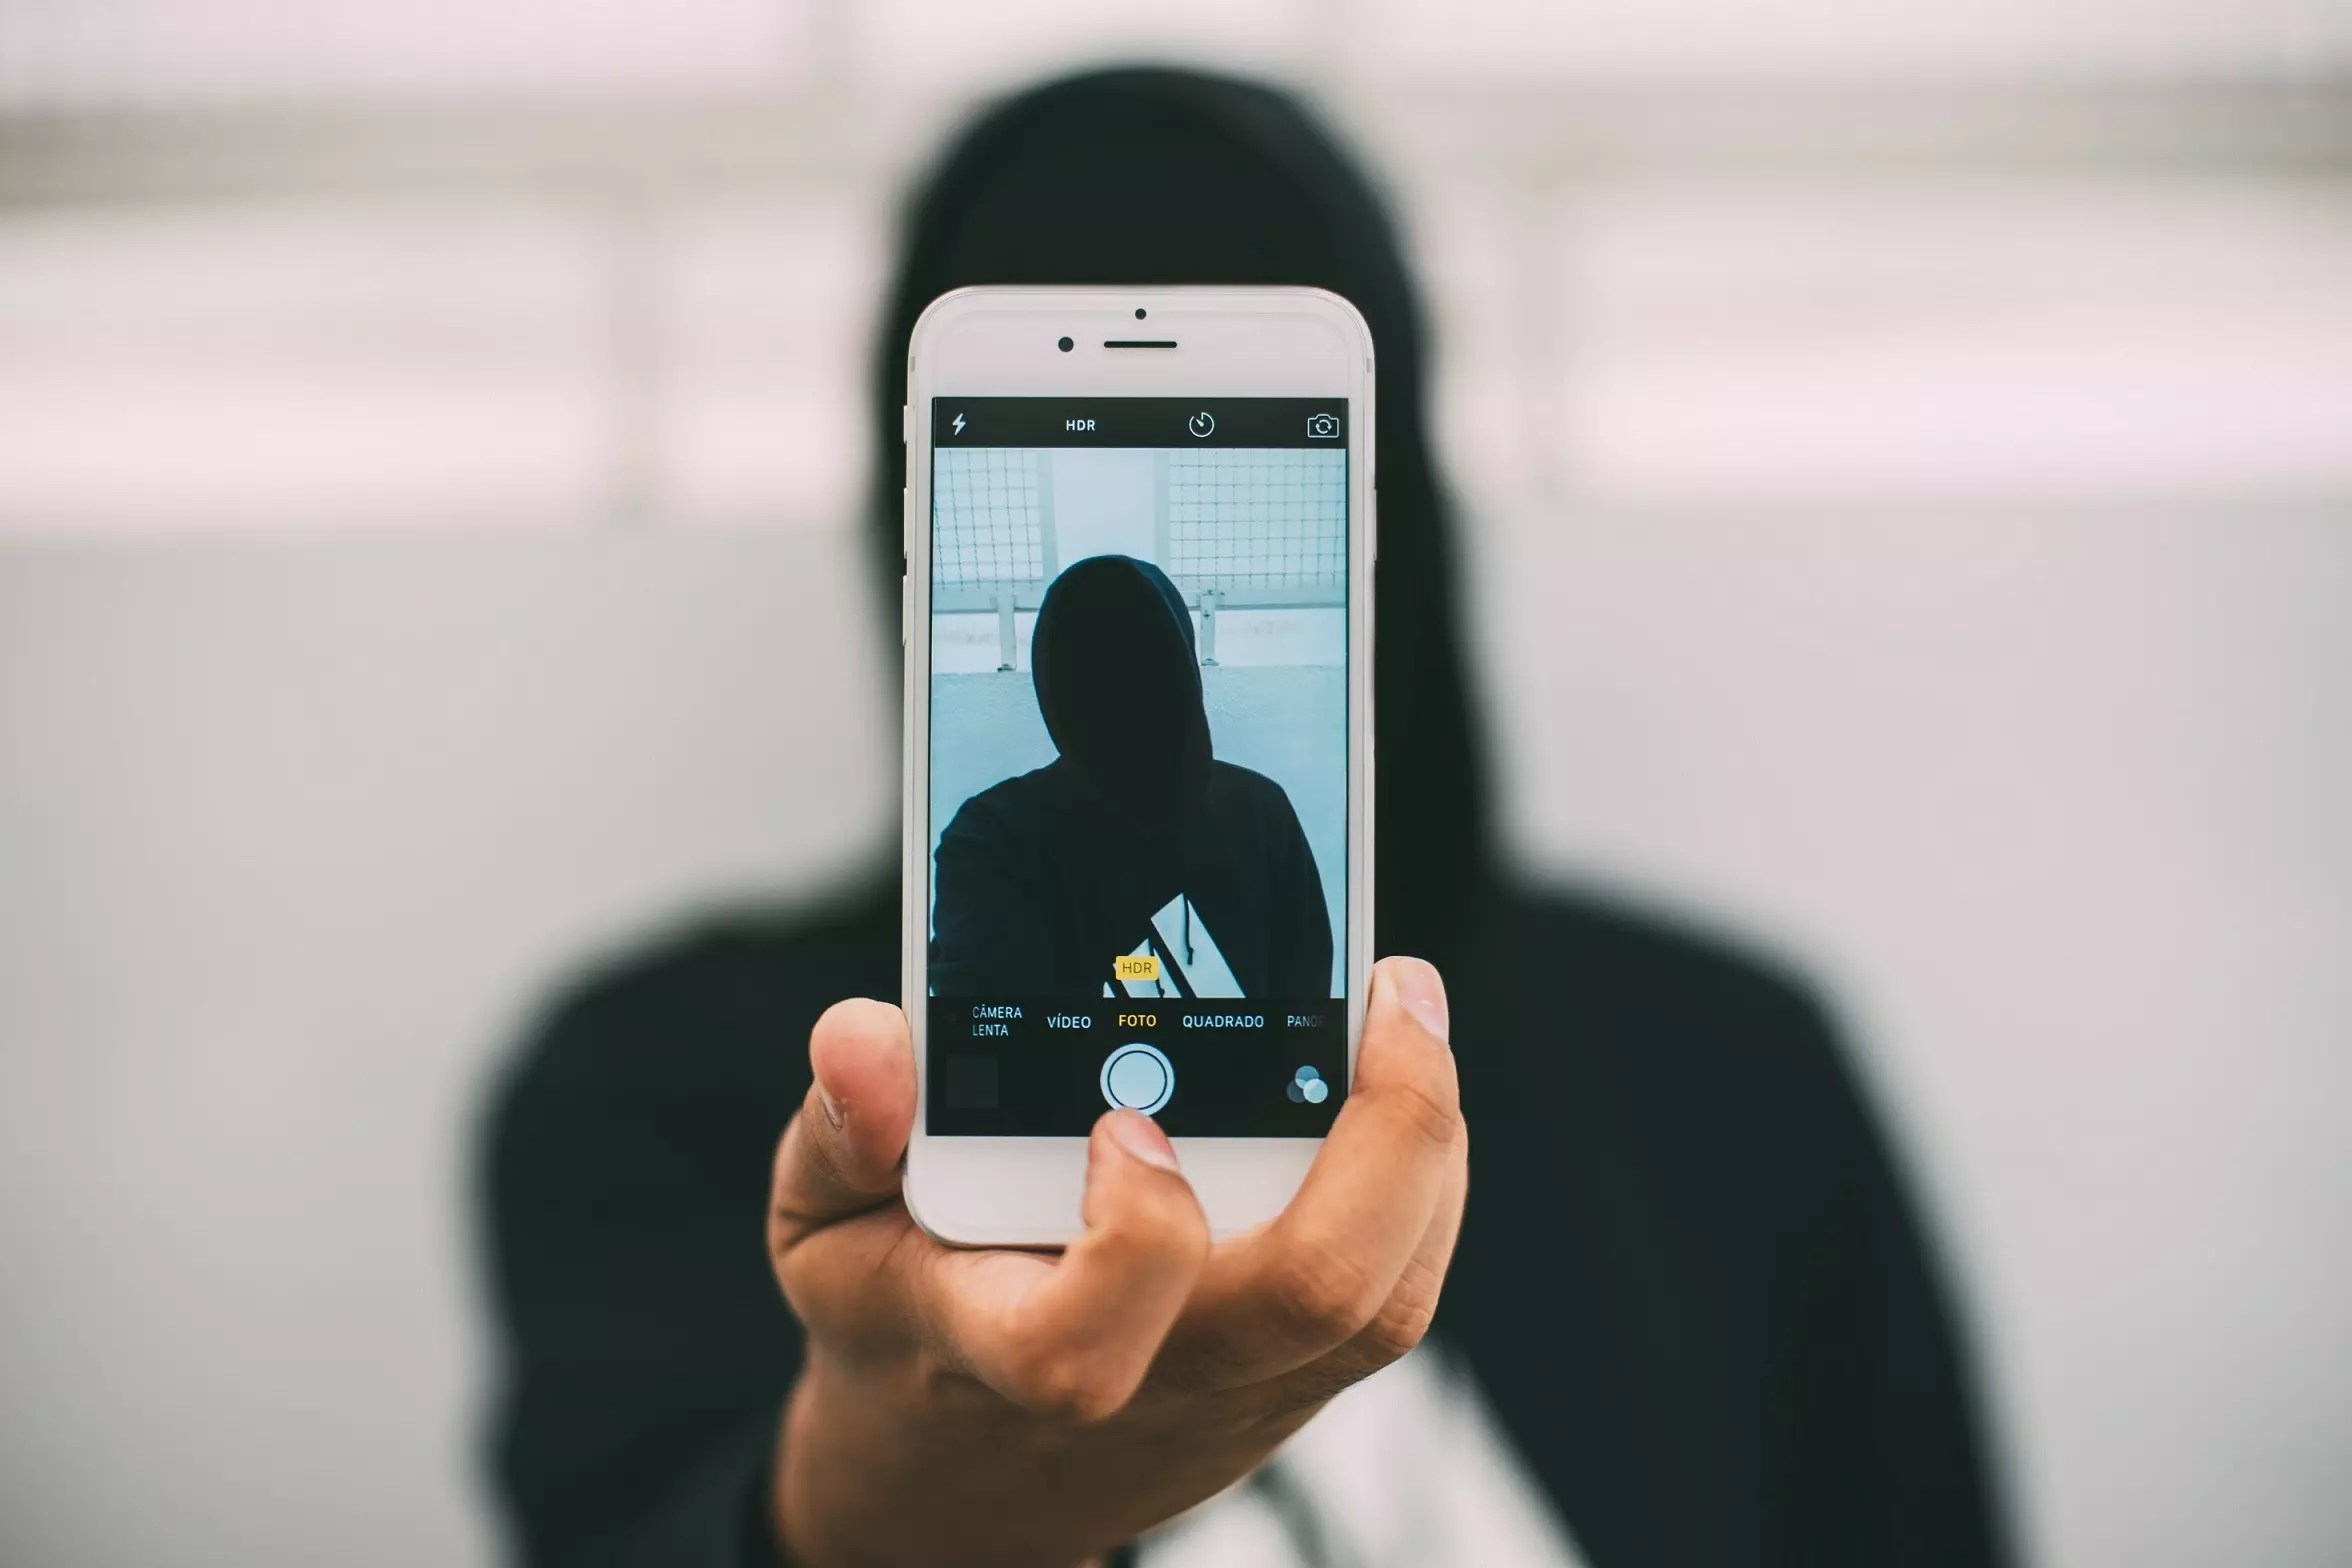 spying phone apps